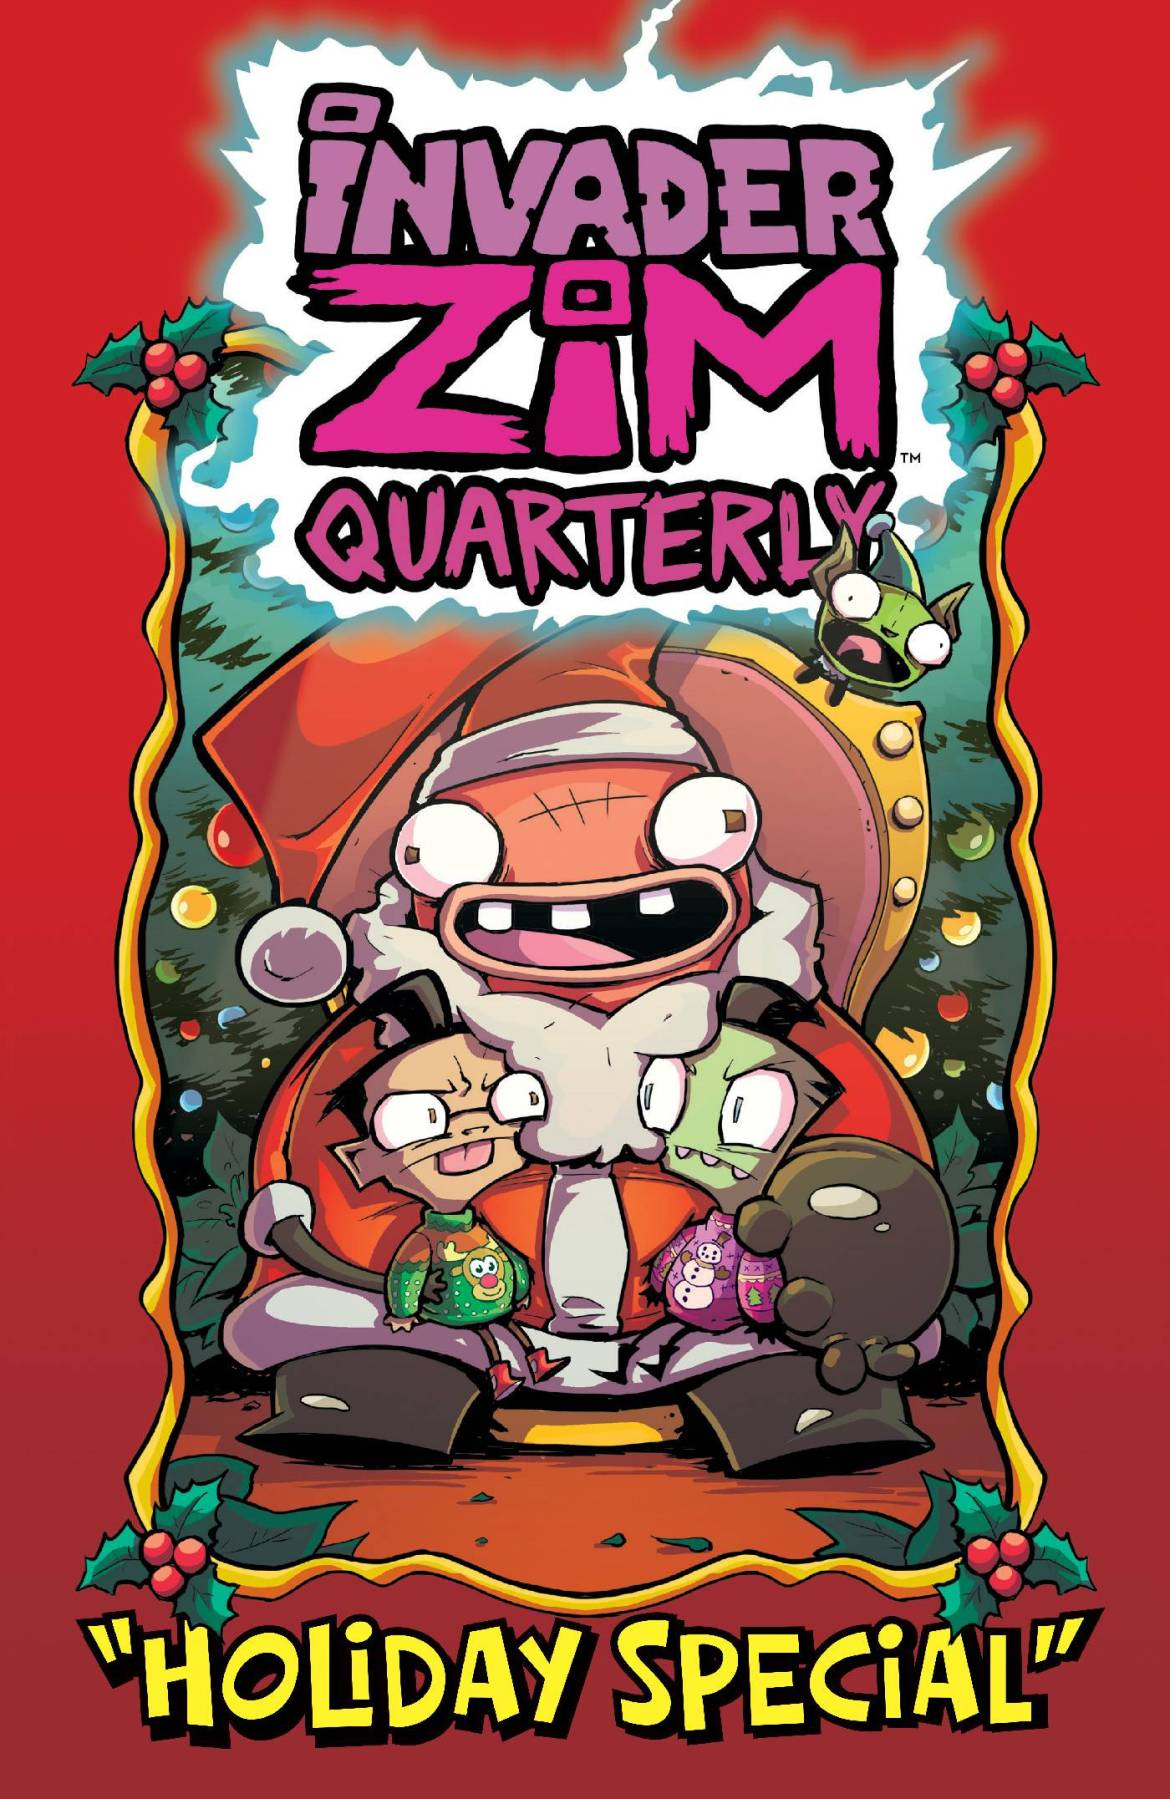 STL170428 ComicList: New Comic Book Releases List for 12/30/2020 (2 Weeks Out)